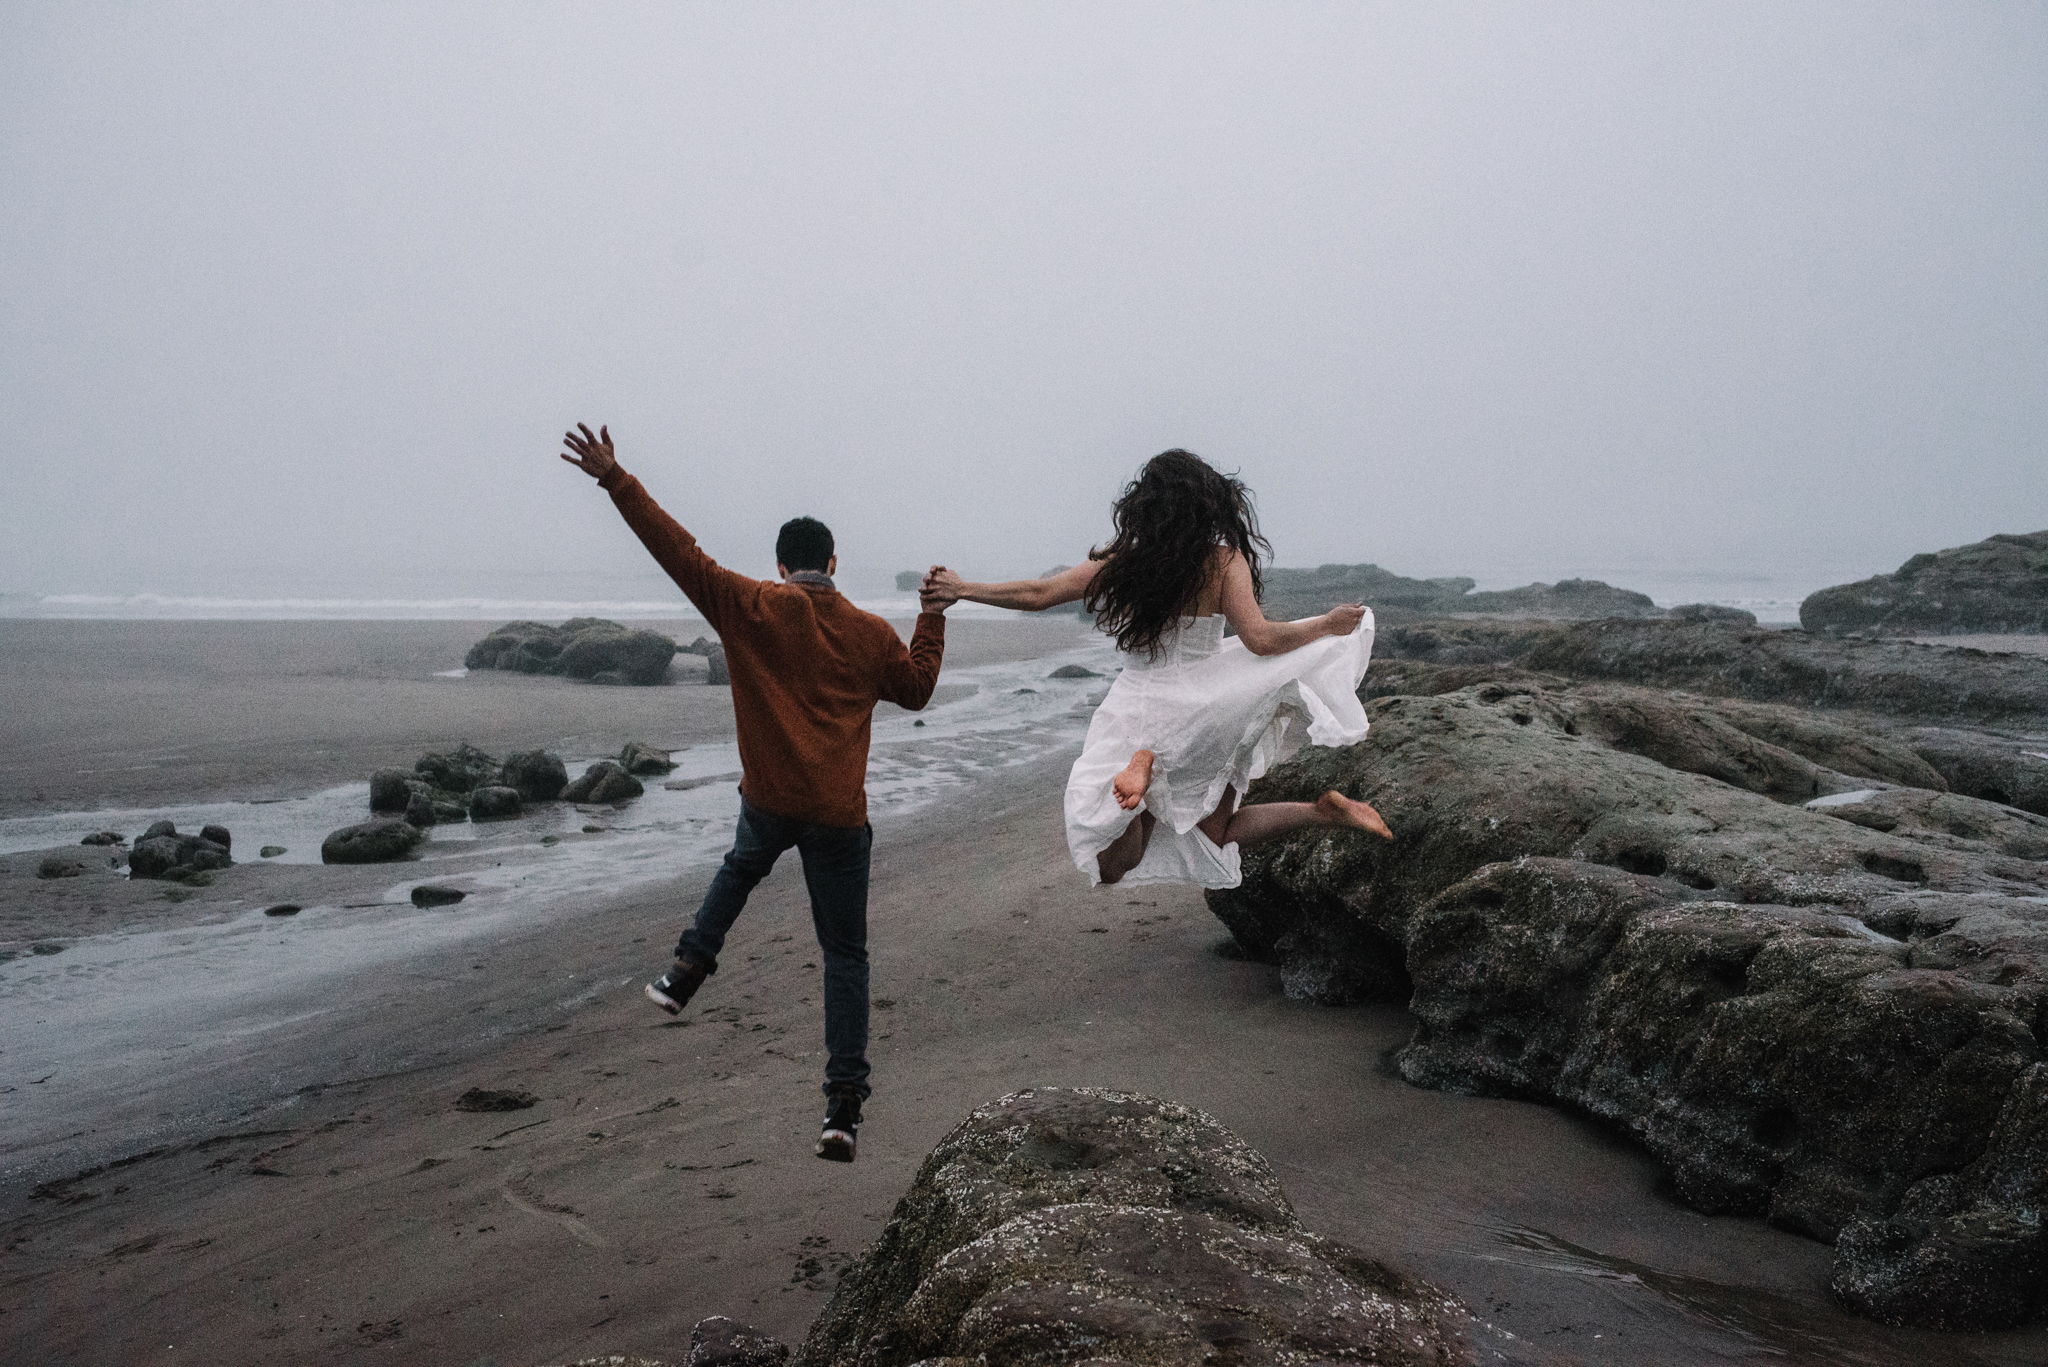 Ruthie and Anthony - Foggy Oregon Coast Couple Adventure Session - White Sails Photography Creative_56.JPG